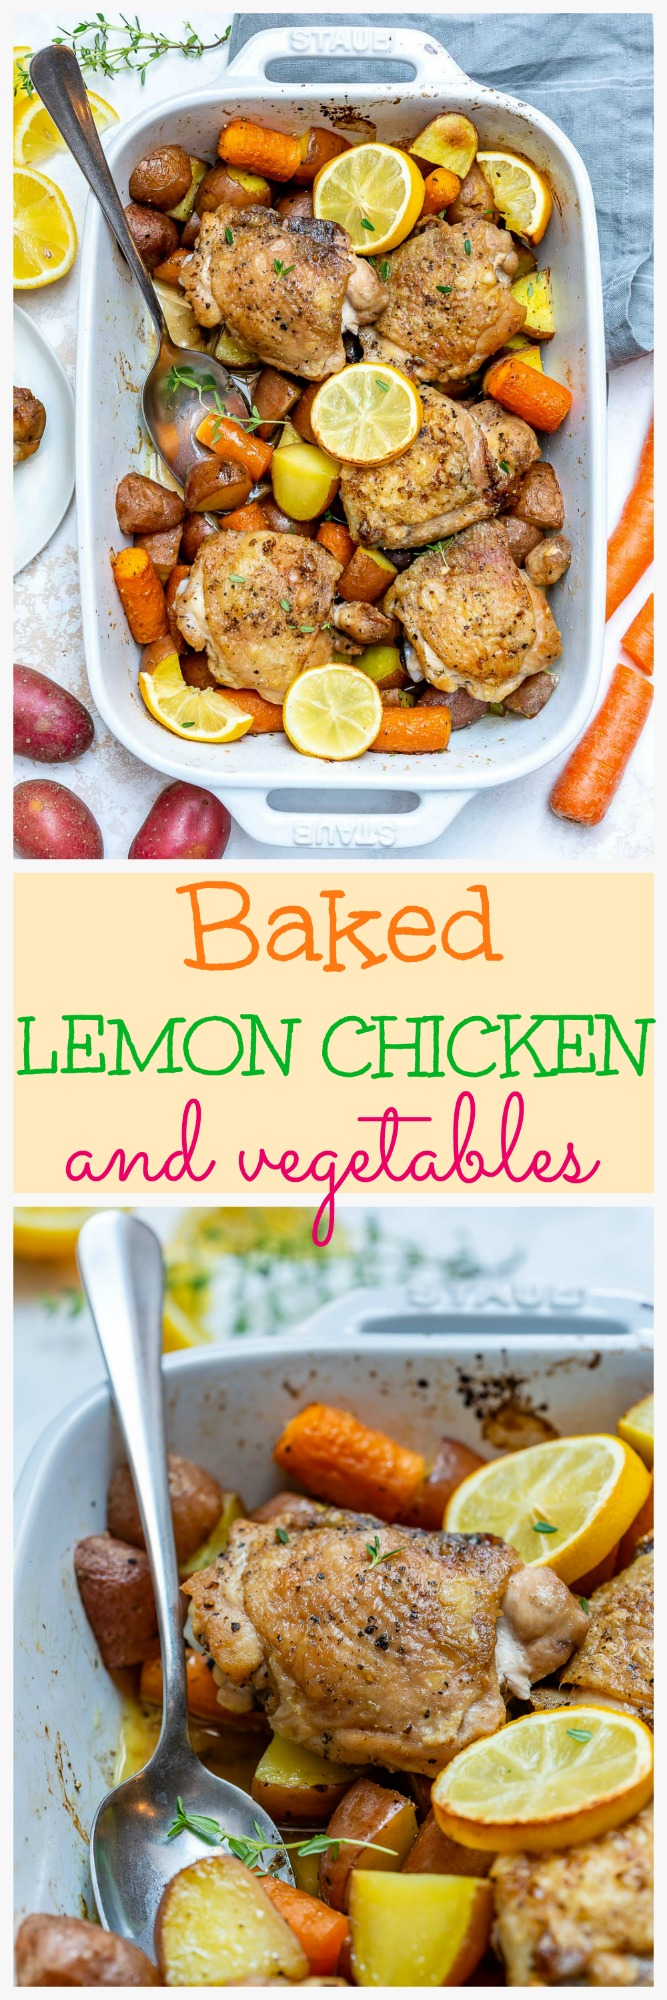 Baked Lemon Chicken and Veggies Food Prep Dinner